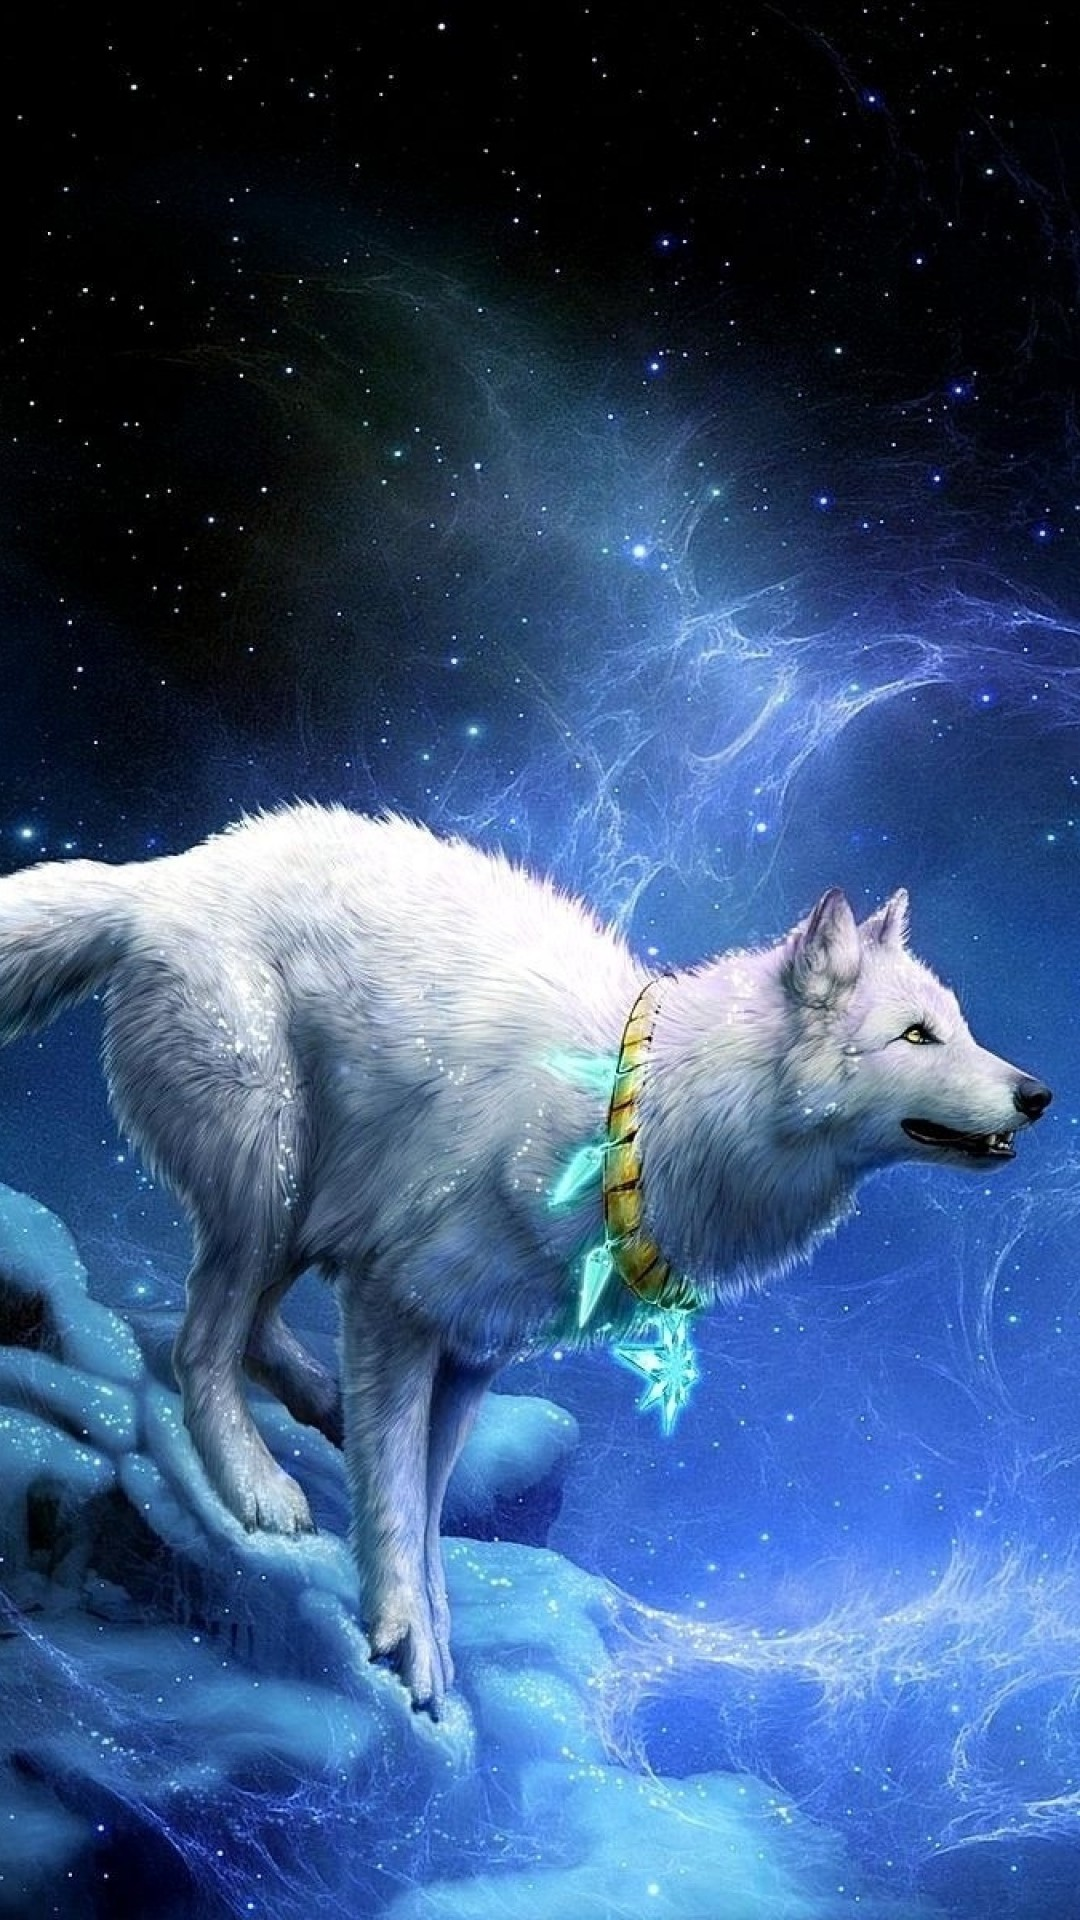 Preview wallpaper wolf, arrivals, moon, breakage 1080×1920